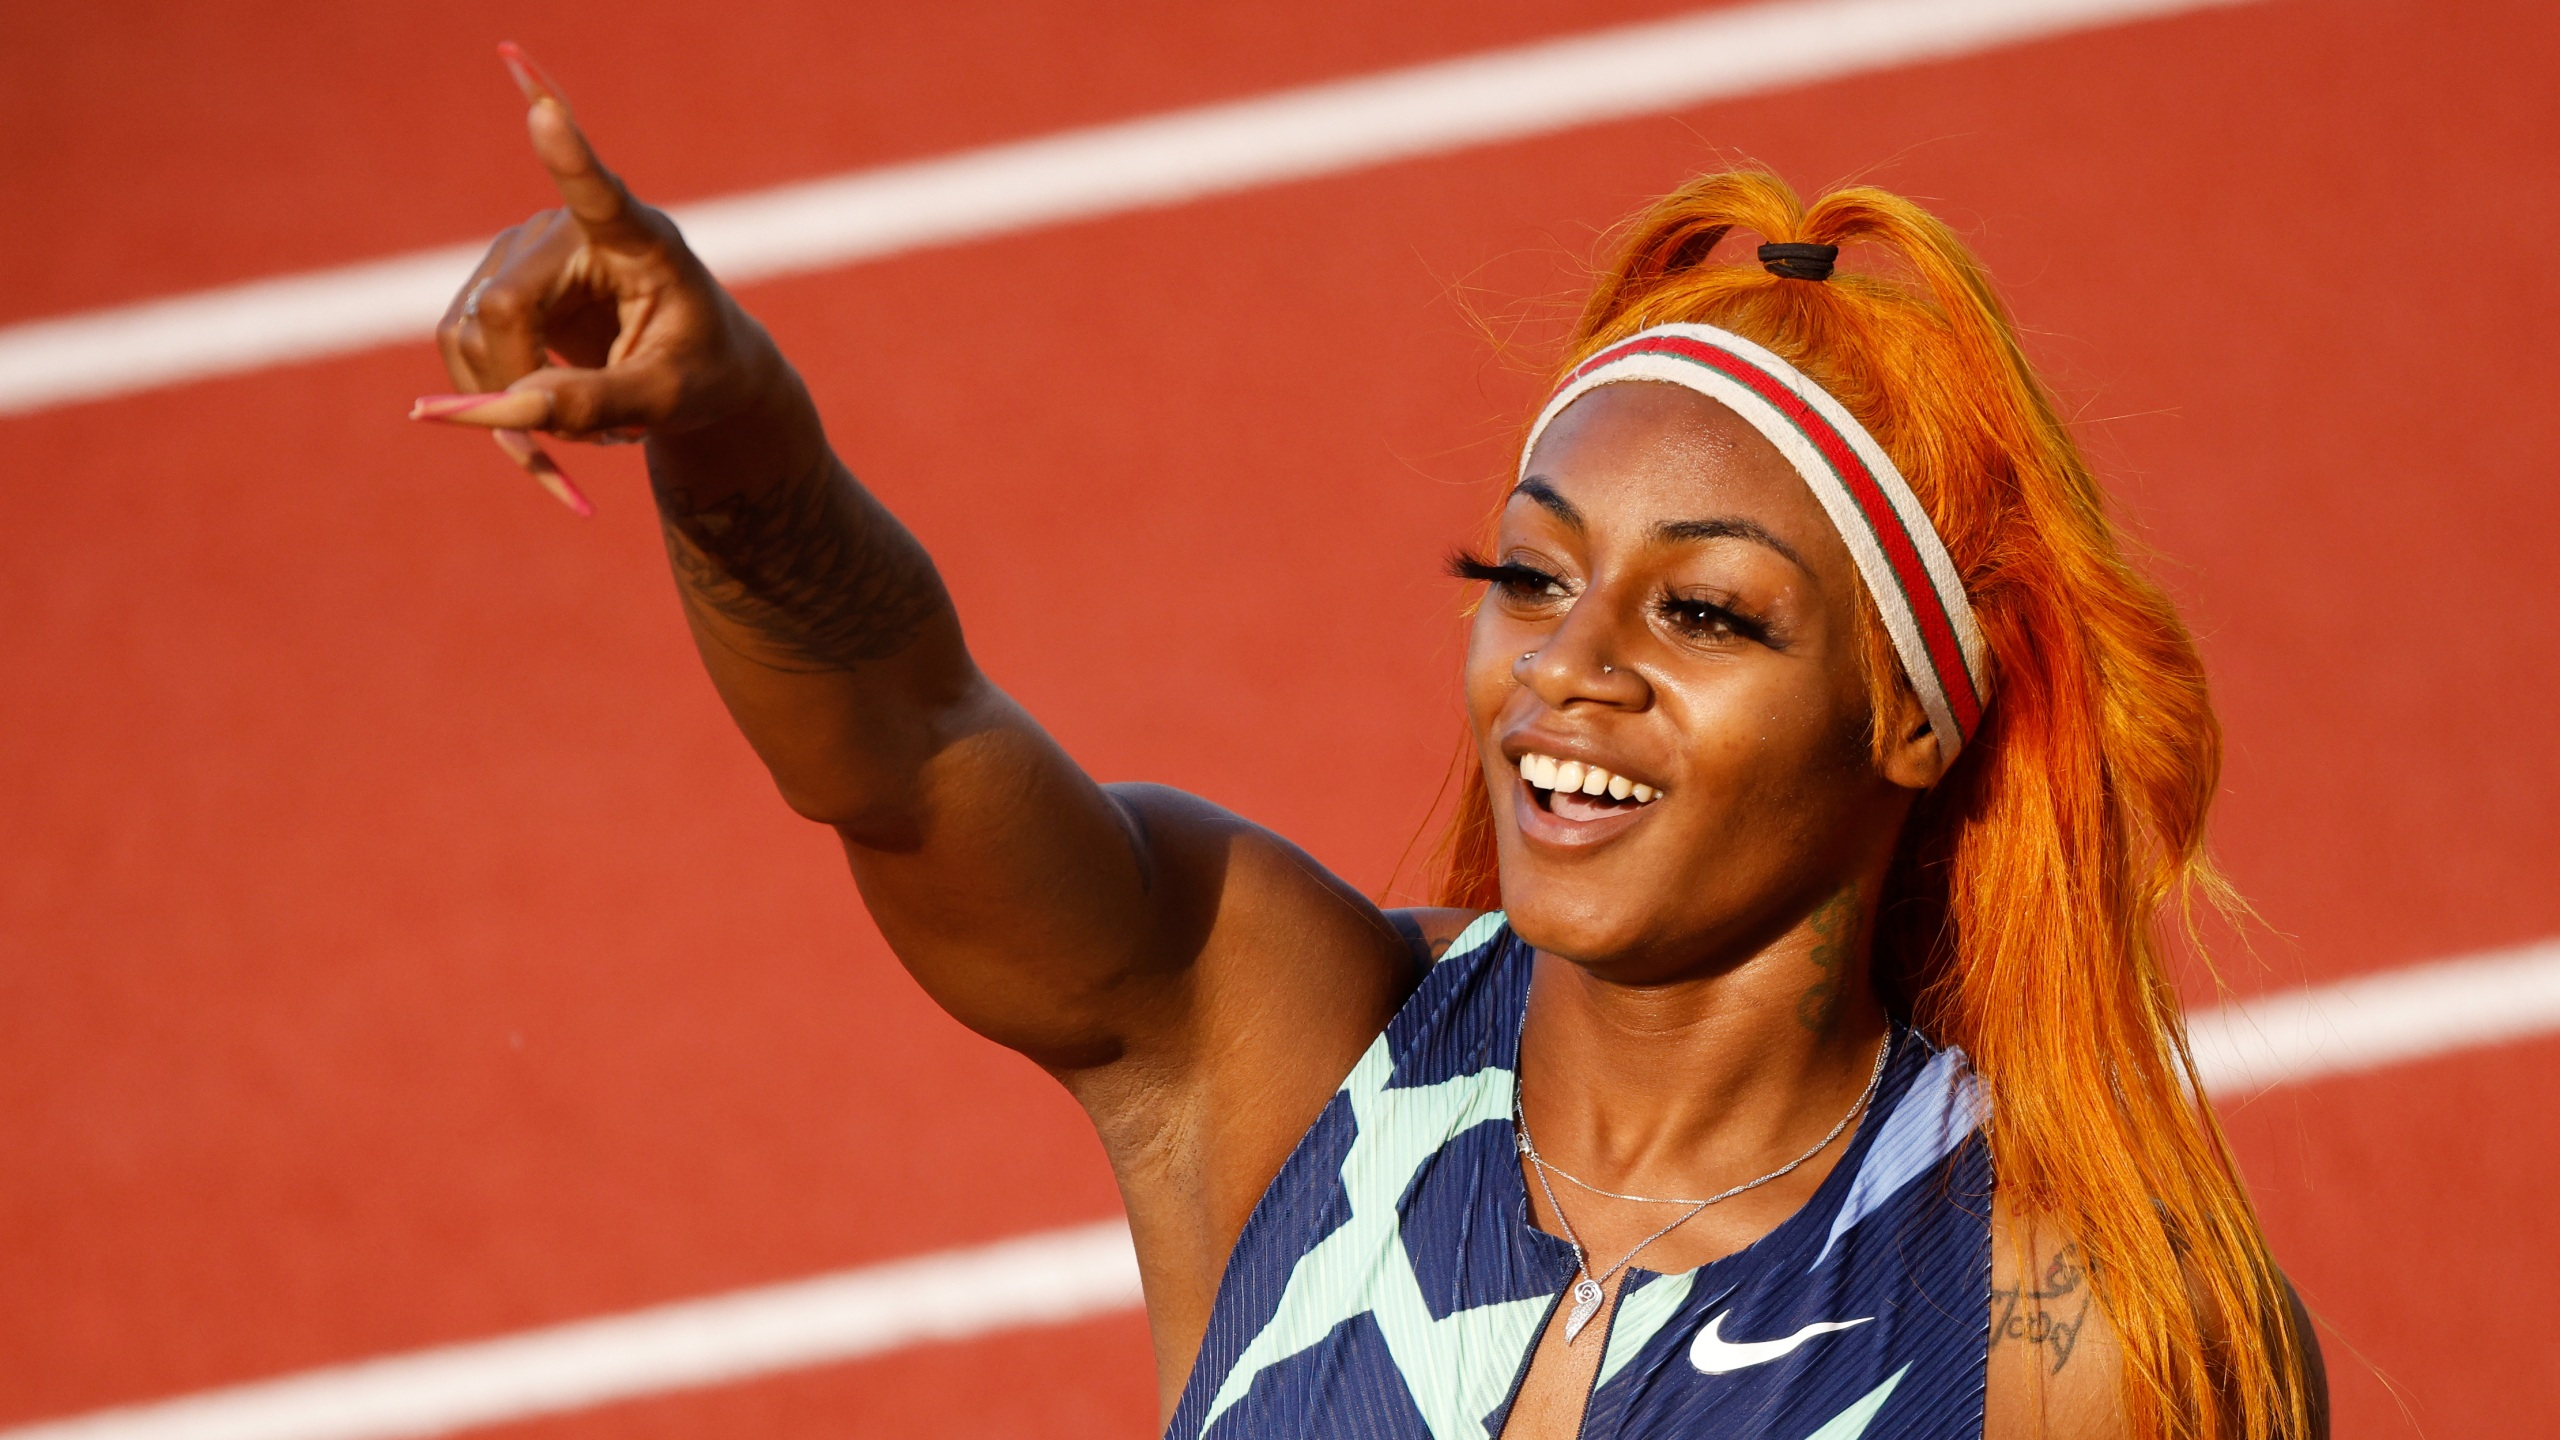 Sha'Carri Richardson reacts after competing in the Women's 100 Meter semi-finals on day two of the 2020 U.S. Olympic Track & Field Team Trials at Hayward Field in Eugene, Oregon, on June 19, 2021. (Cliff Hawkins / Getty Images)